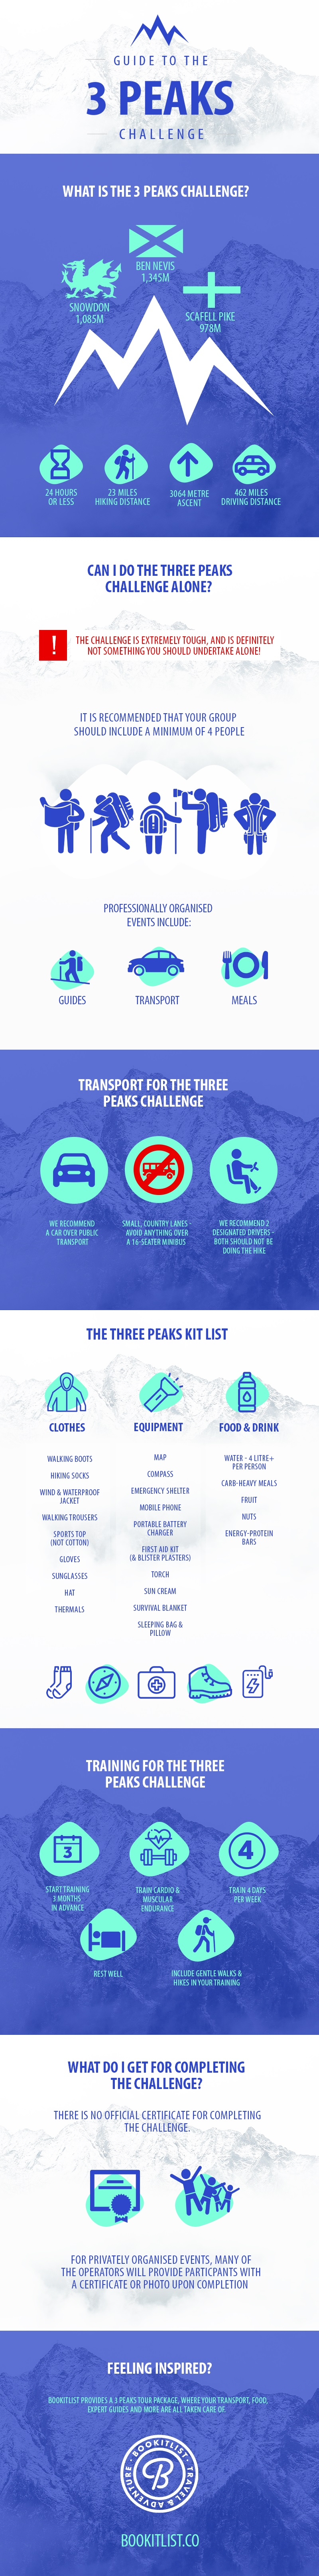 A Guide to the 3 Peaks Challenge by Bookitlist